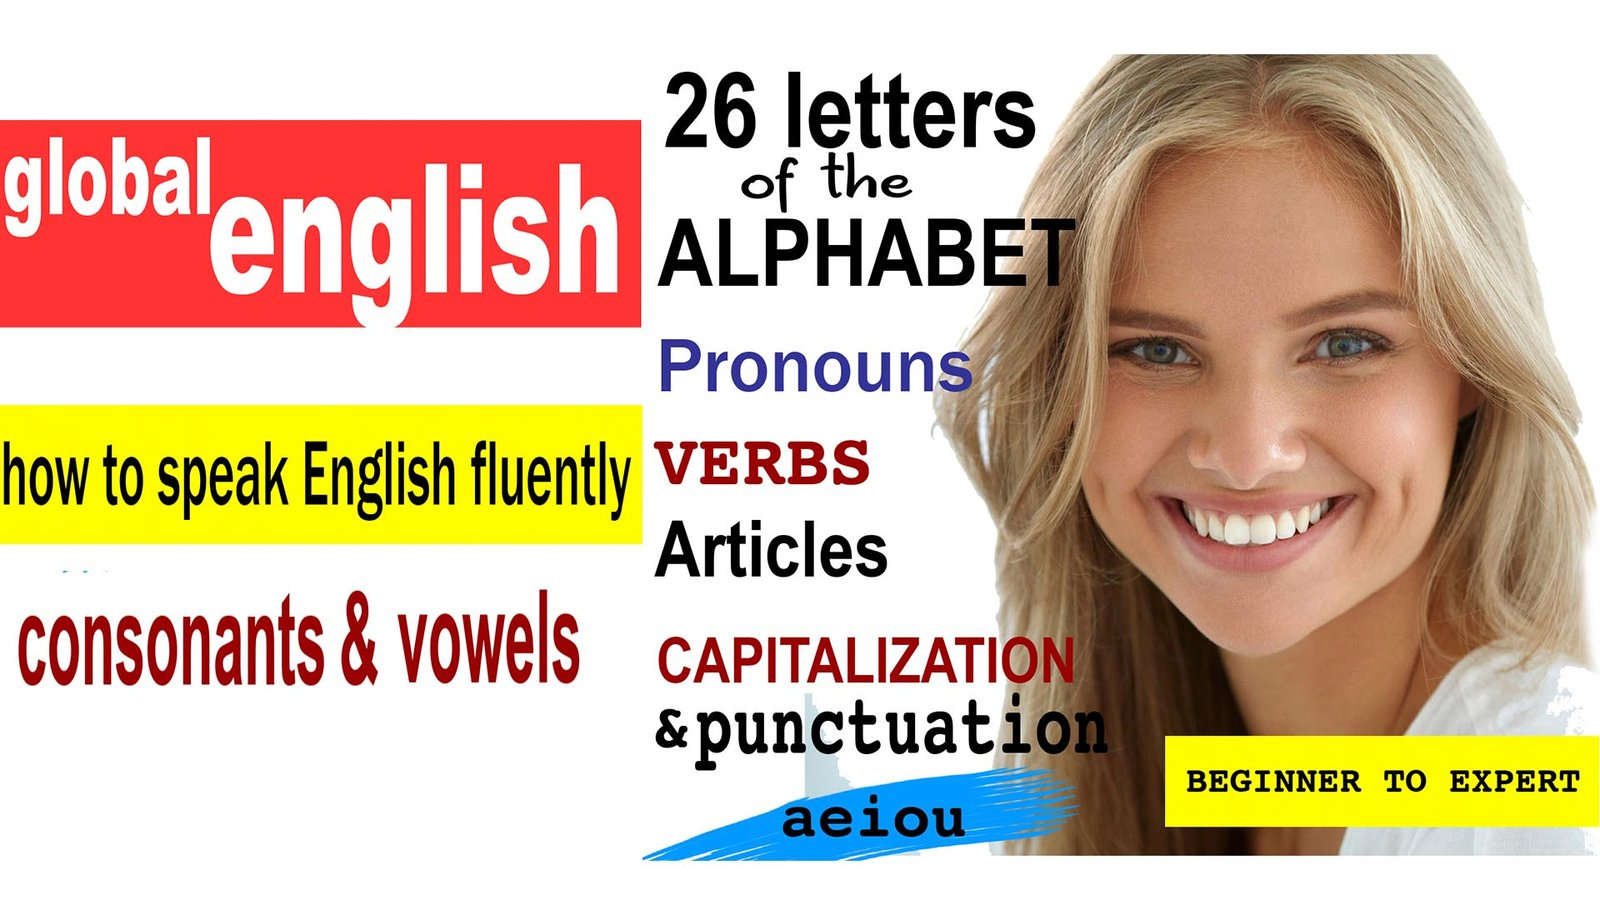 Global English Course 1 Lesson 1: Learn English as a Second Language - The Alphabet, Consonants & Vowels, Capitalization & Punctuation, Personal Pronouns, The Verb 'to be', Articles a/an/the